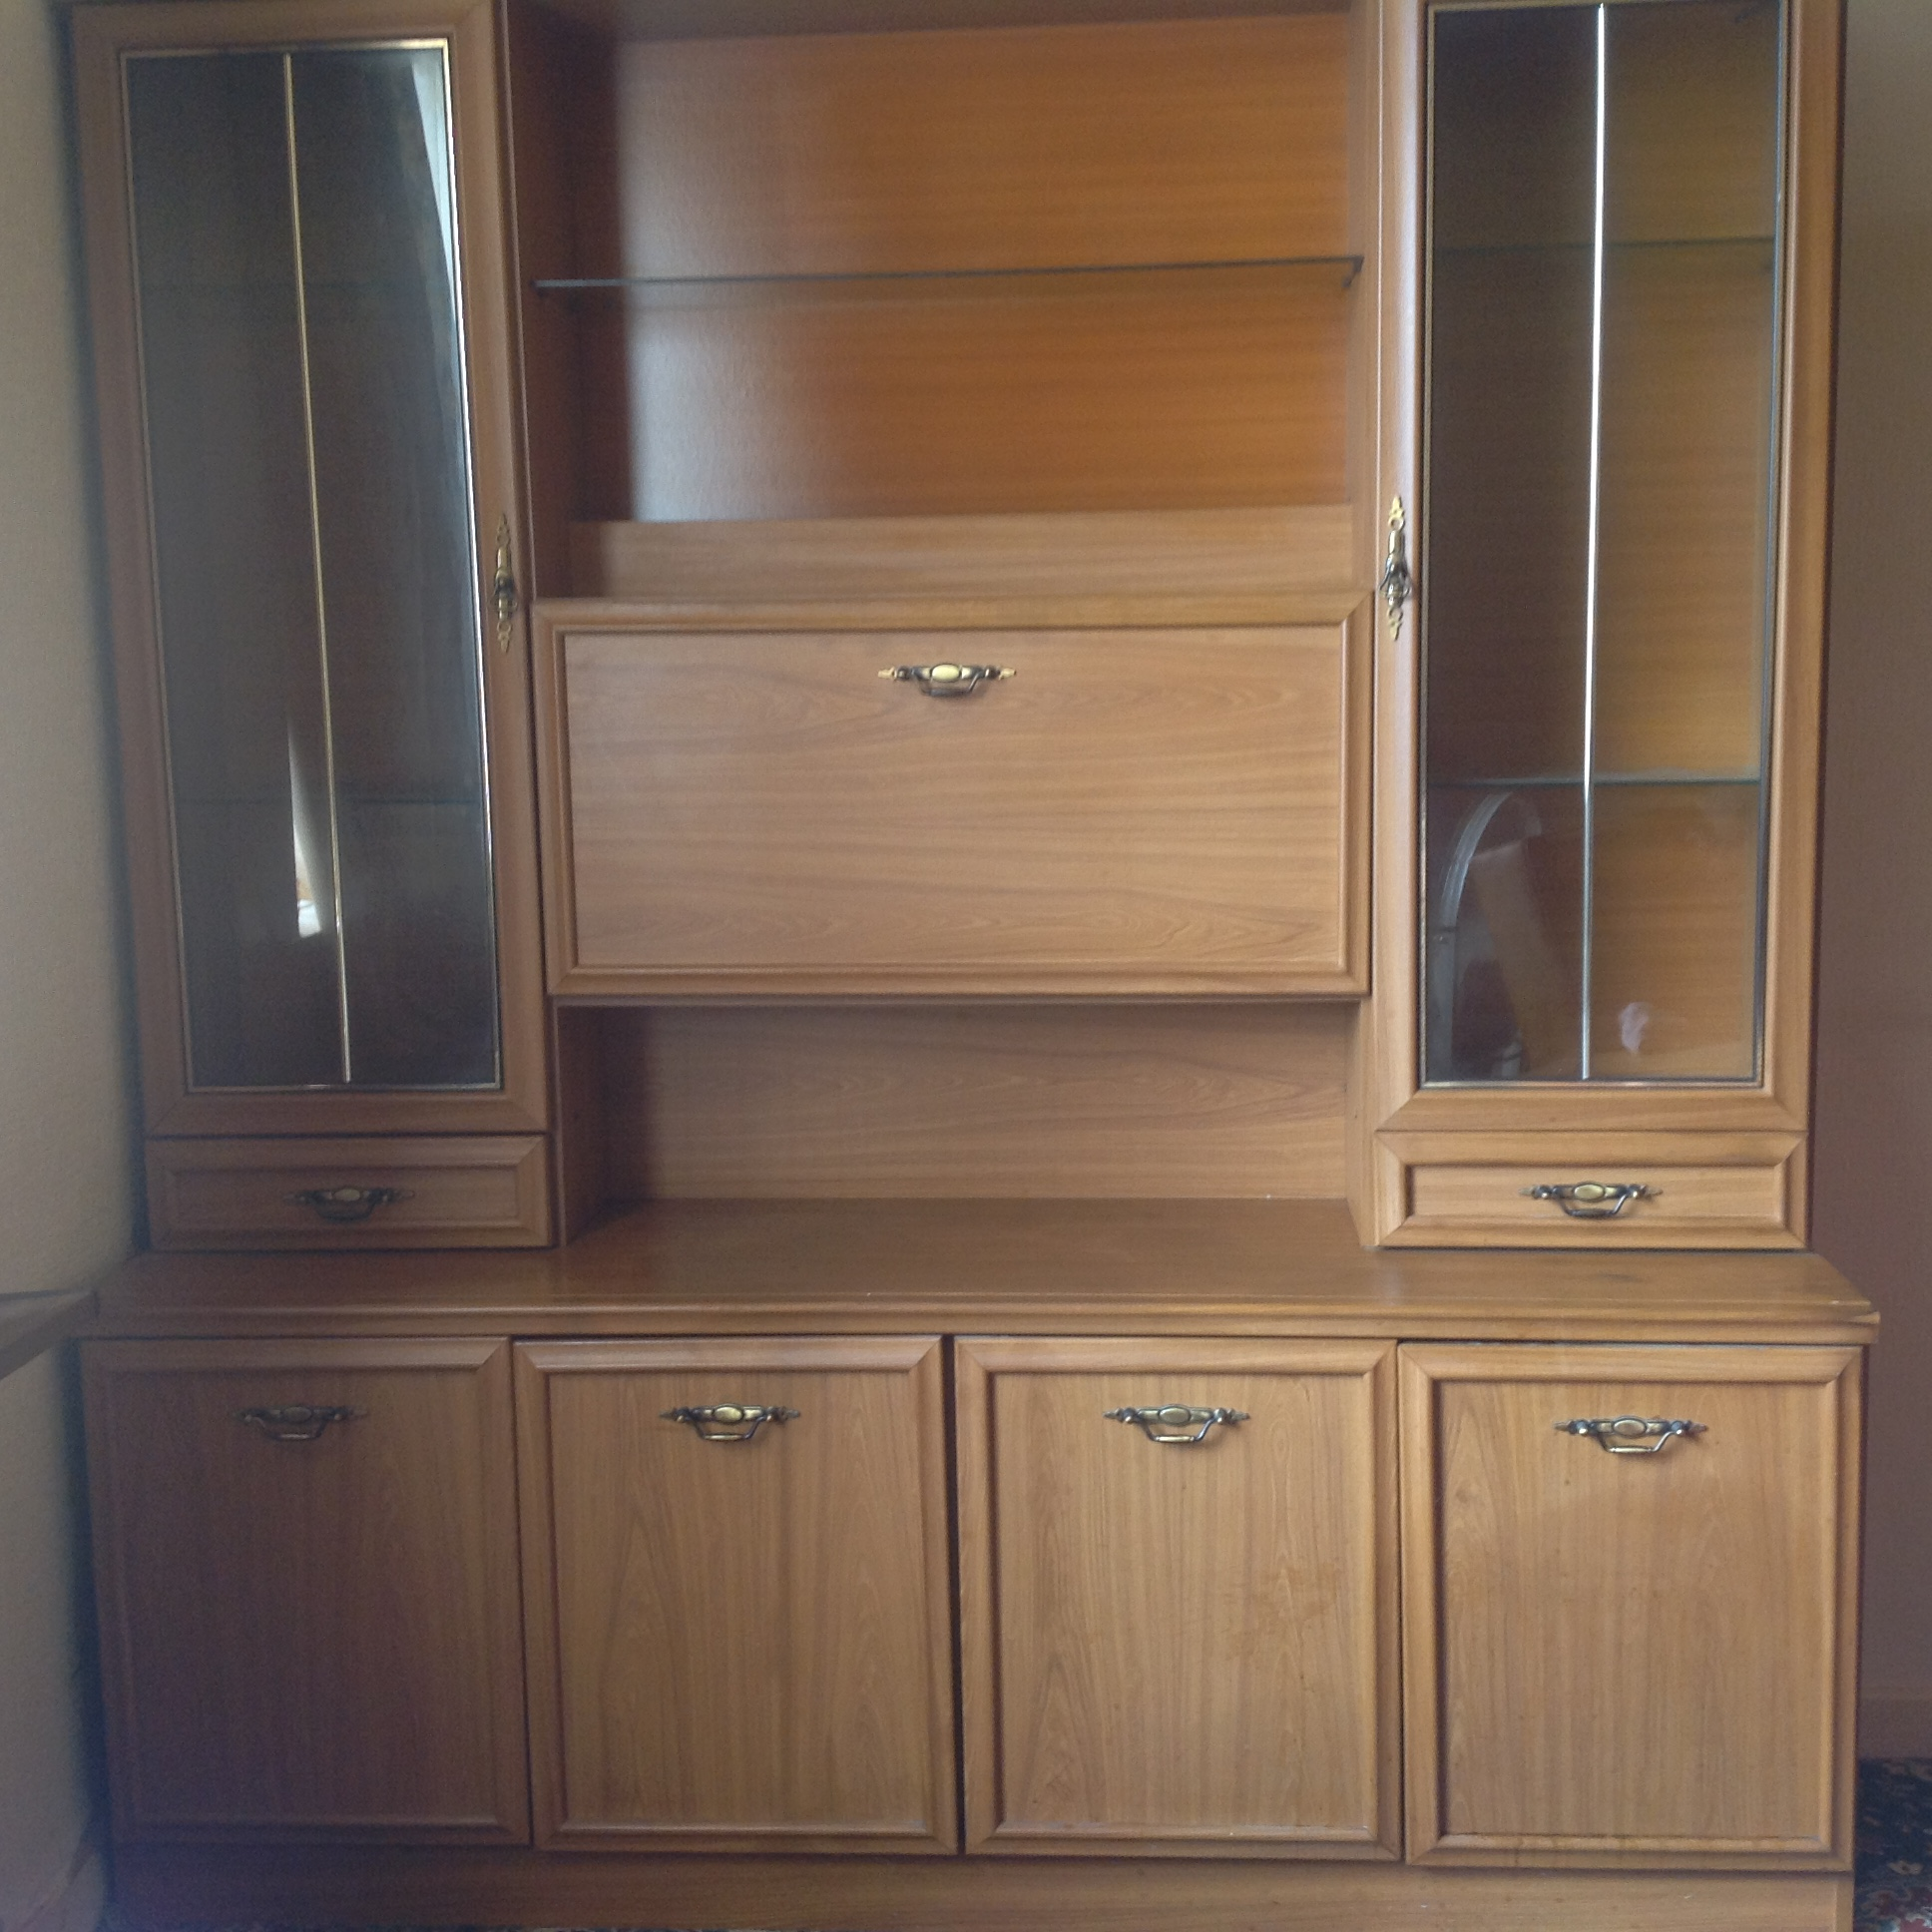 For sale: Wall display unit